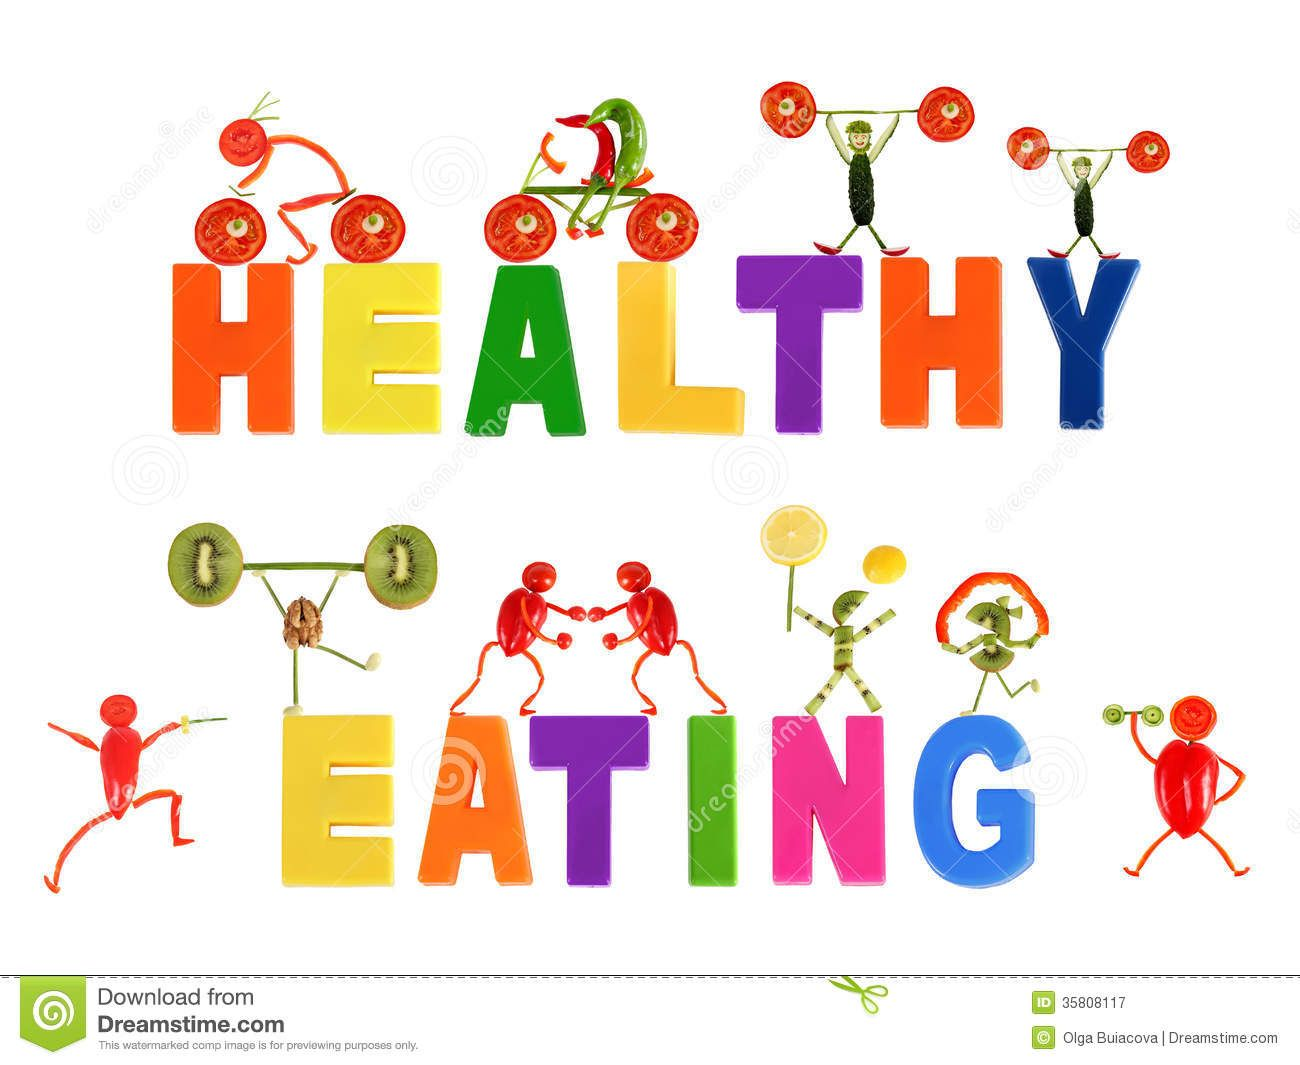 healthy meal clipart - Free Large Images | Clip art, Healthy